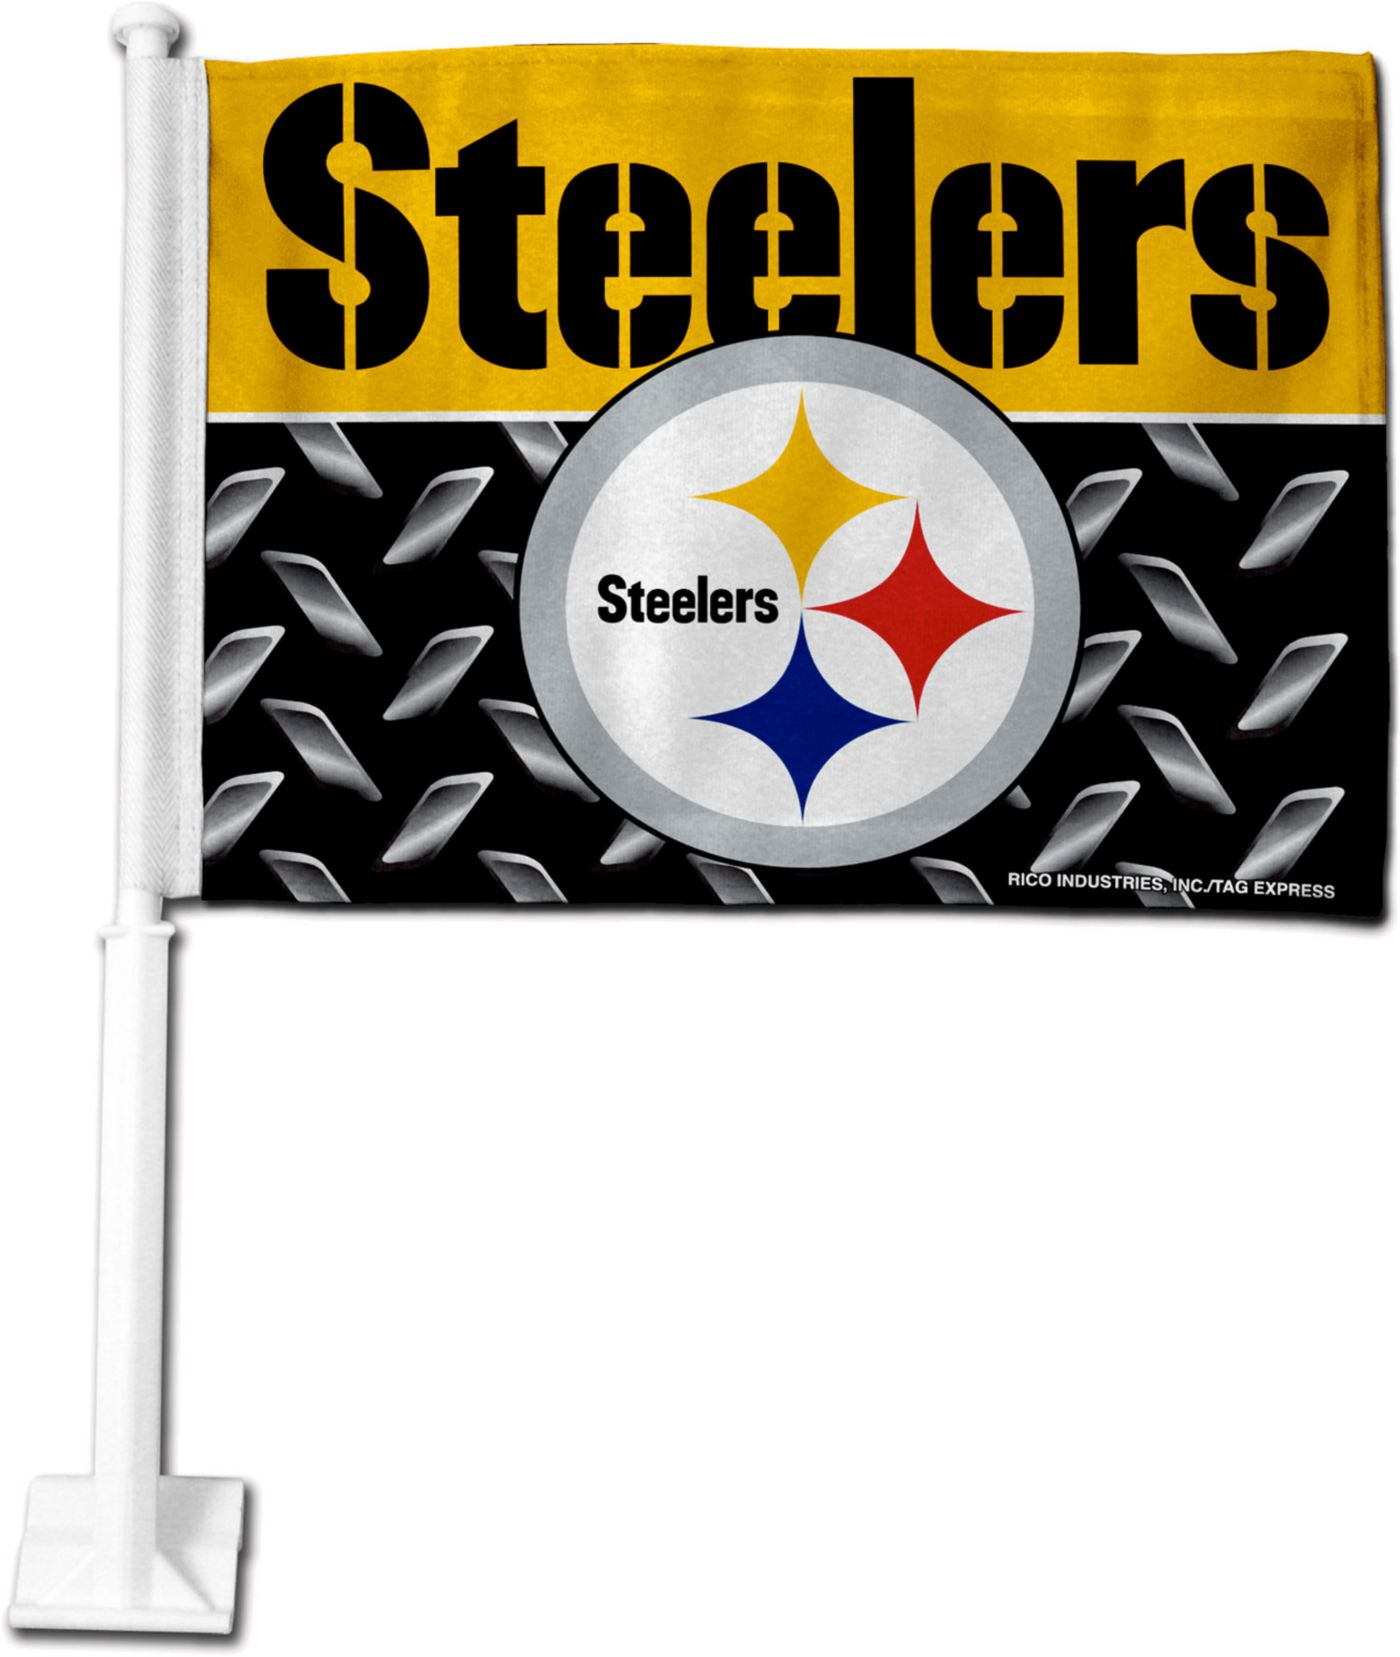 Rico Pittsburgh Steelers Car Flag